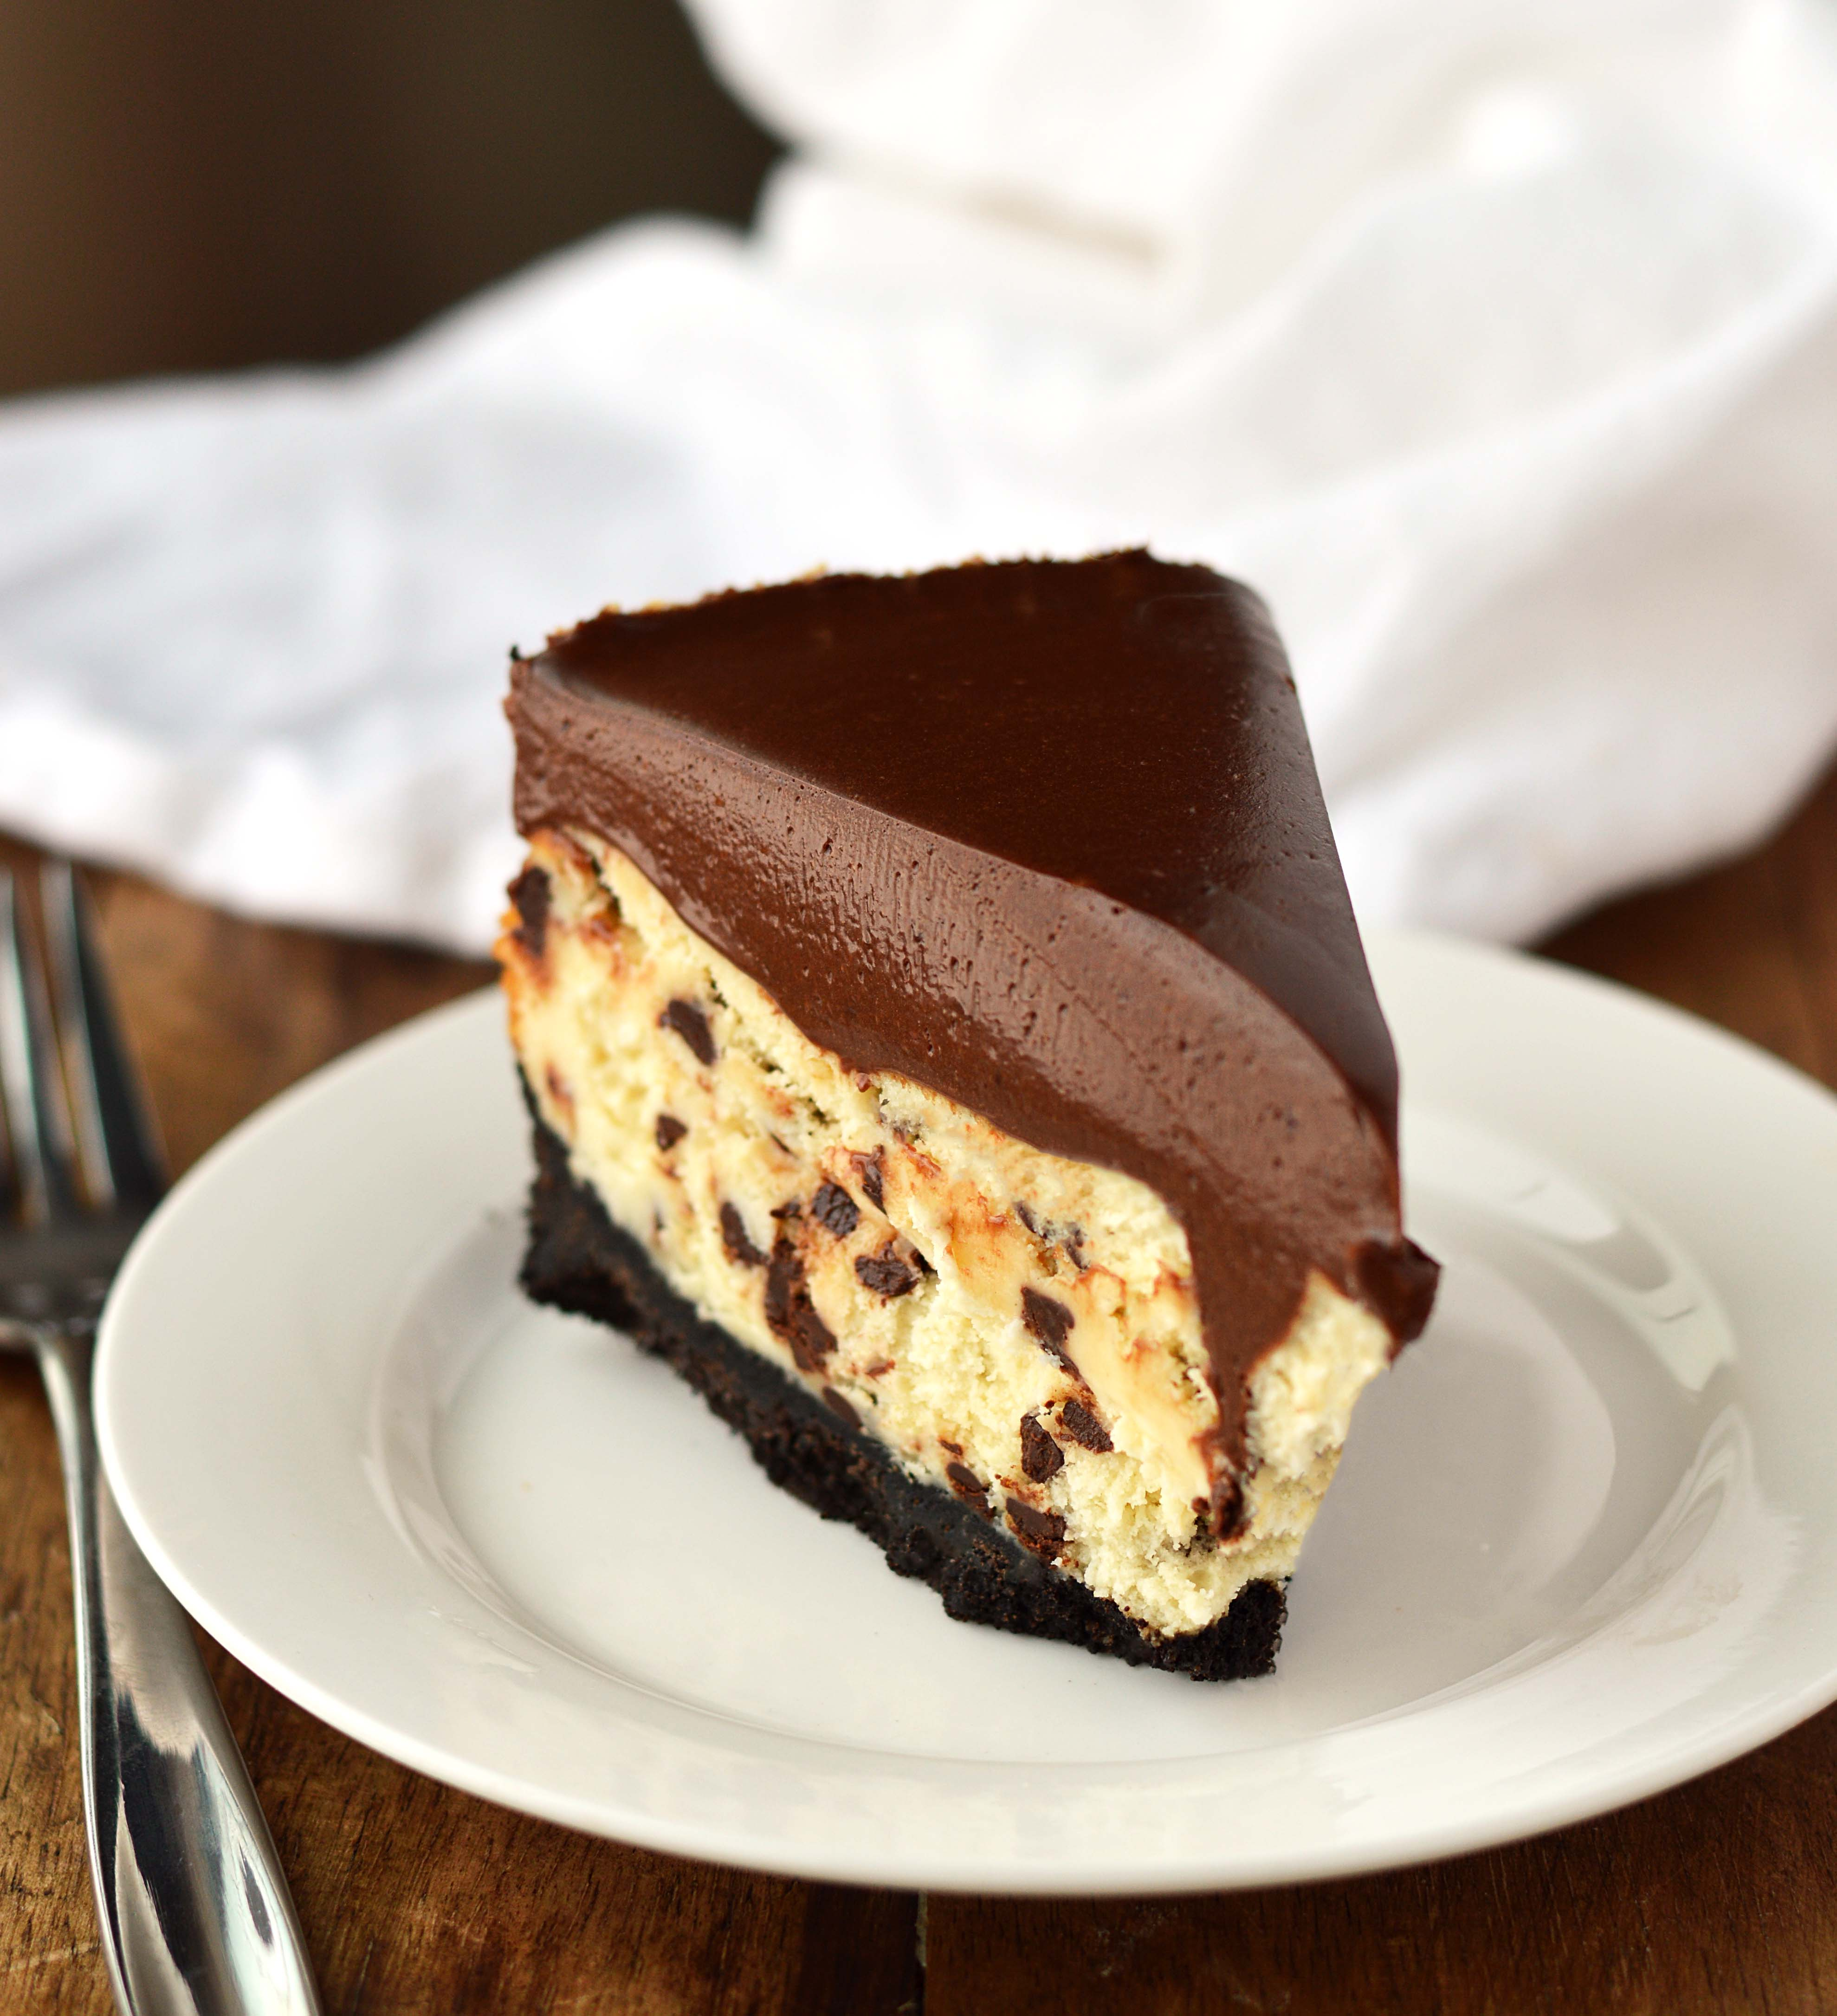 Chocolate mousse cheesecake - Friday is Cake Night